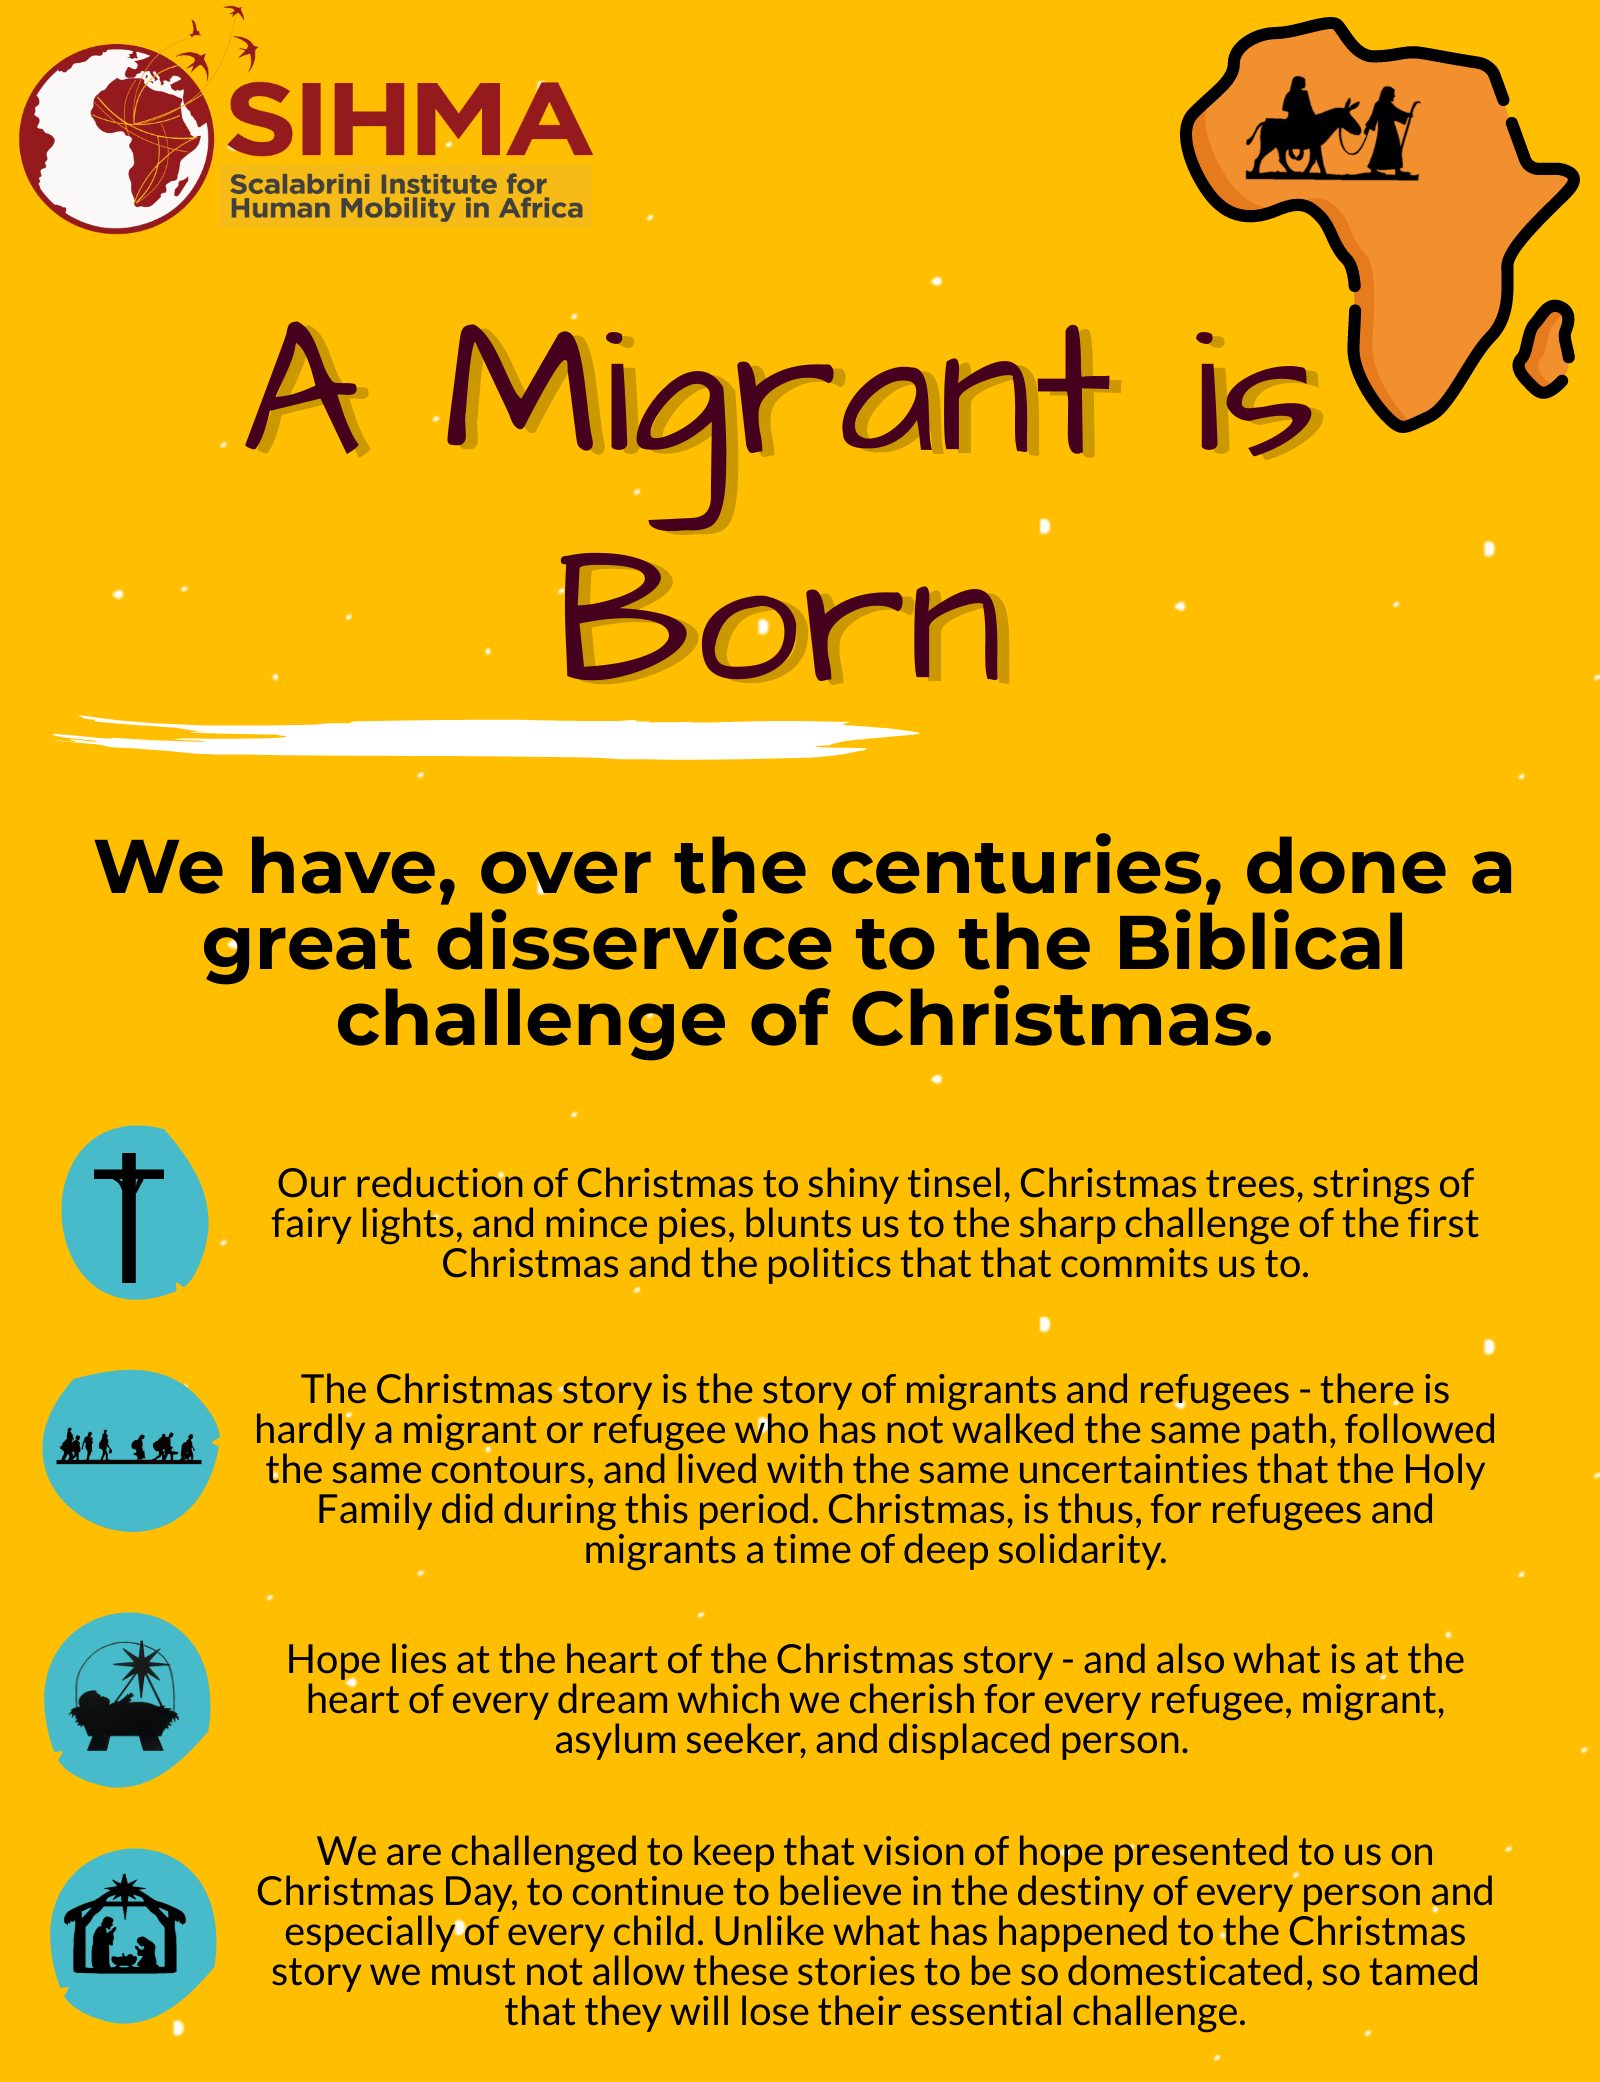 https://www.sihma.org.za/photos/shares/A Migrant is Born.png